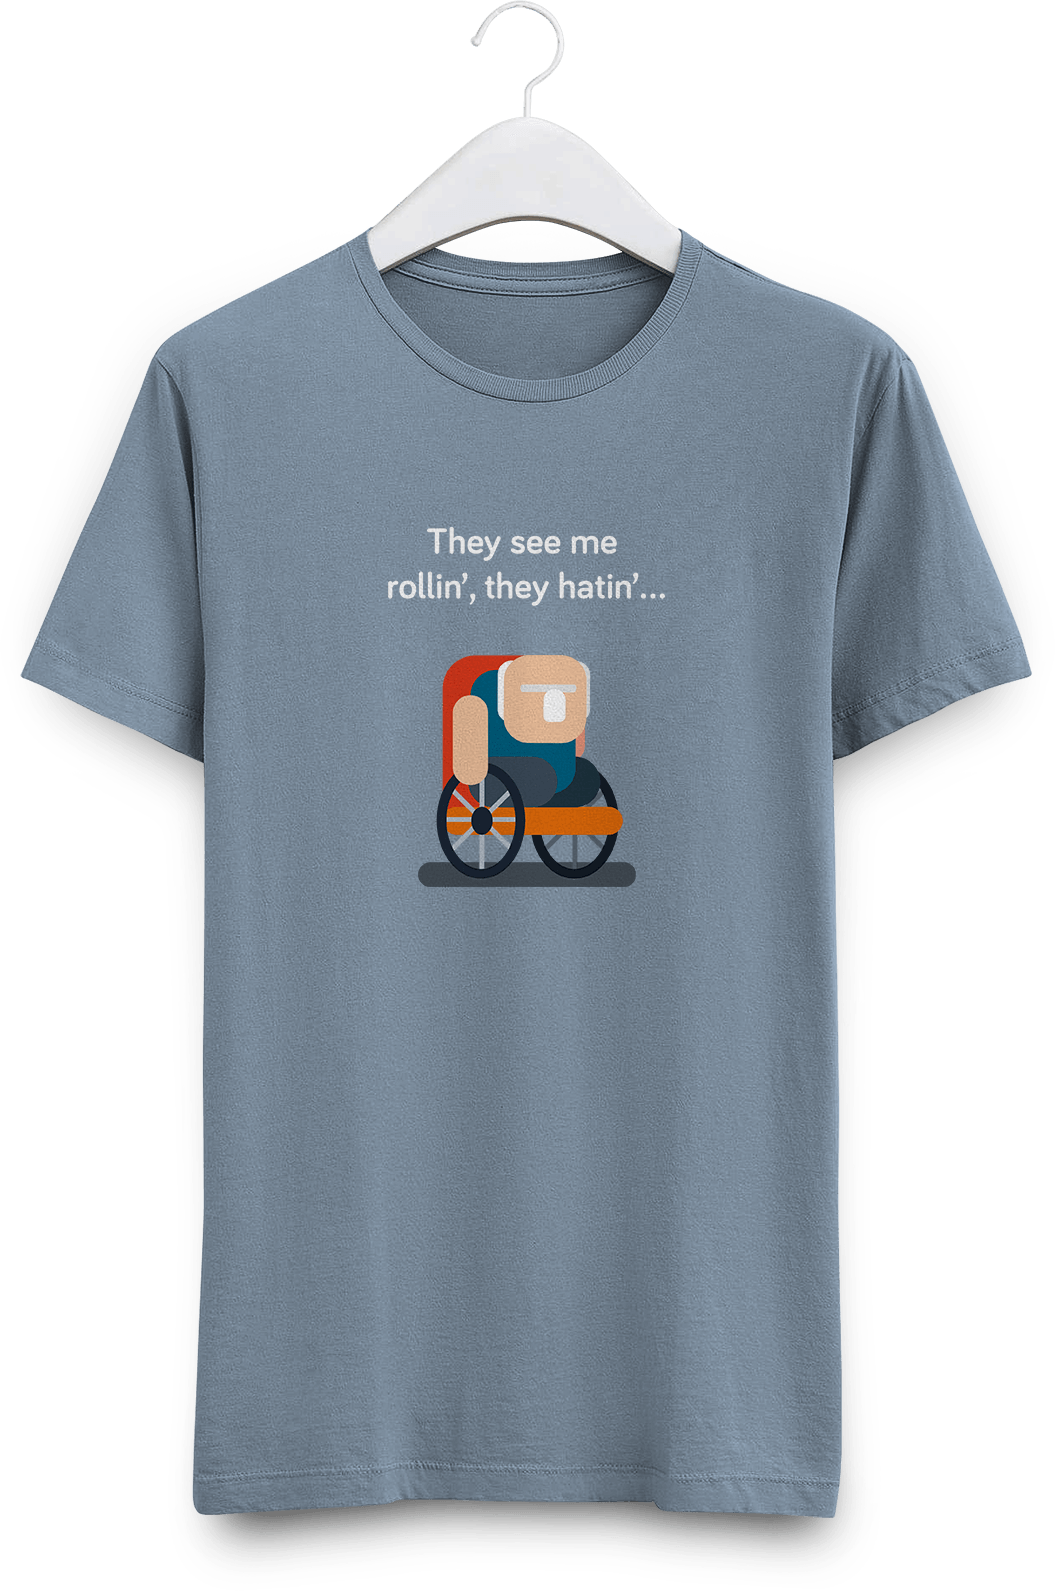 Grey shirt with derpy grandpa character in wheelchair saying They see me rollin', they hatin'